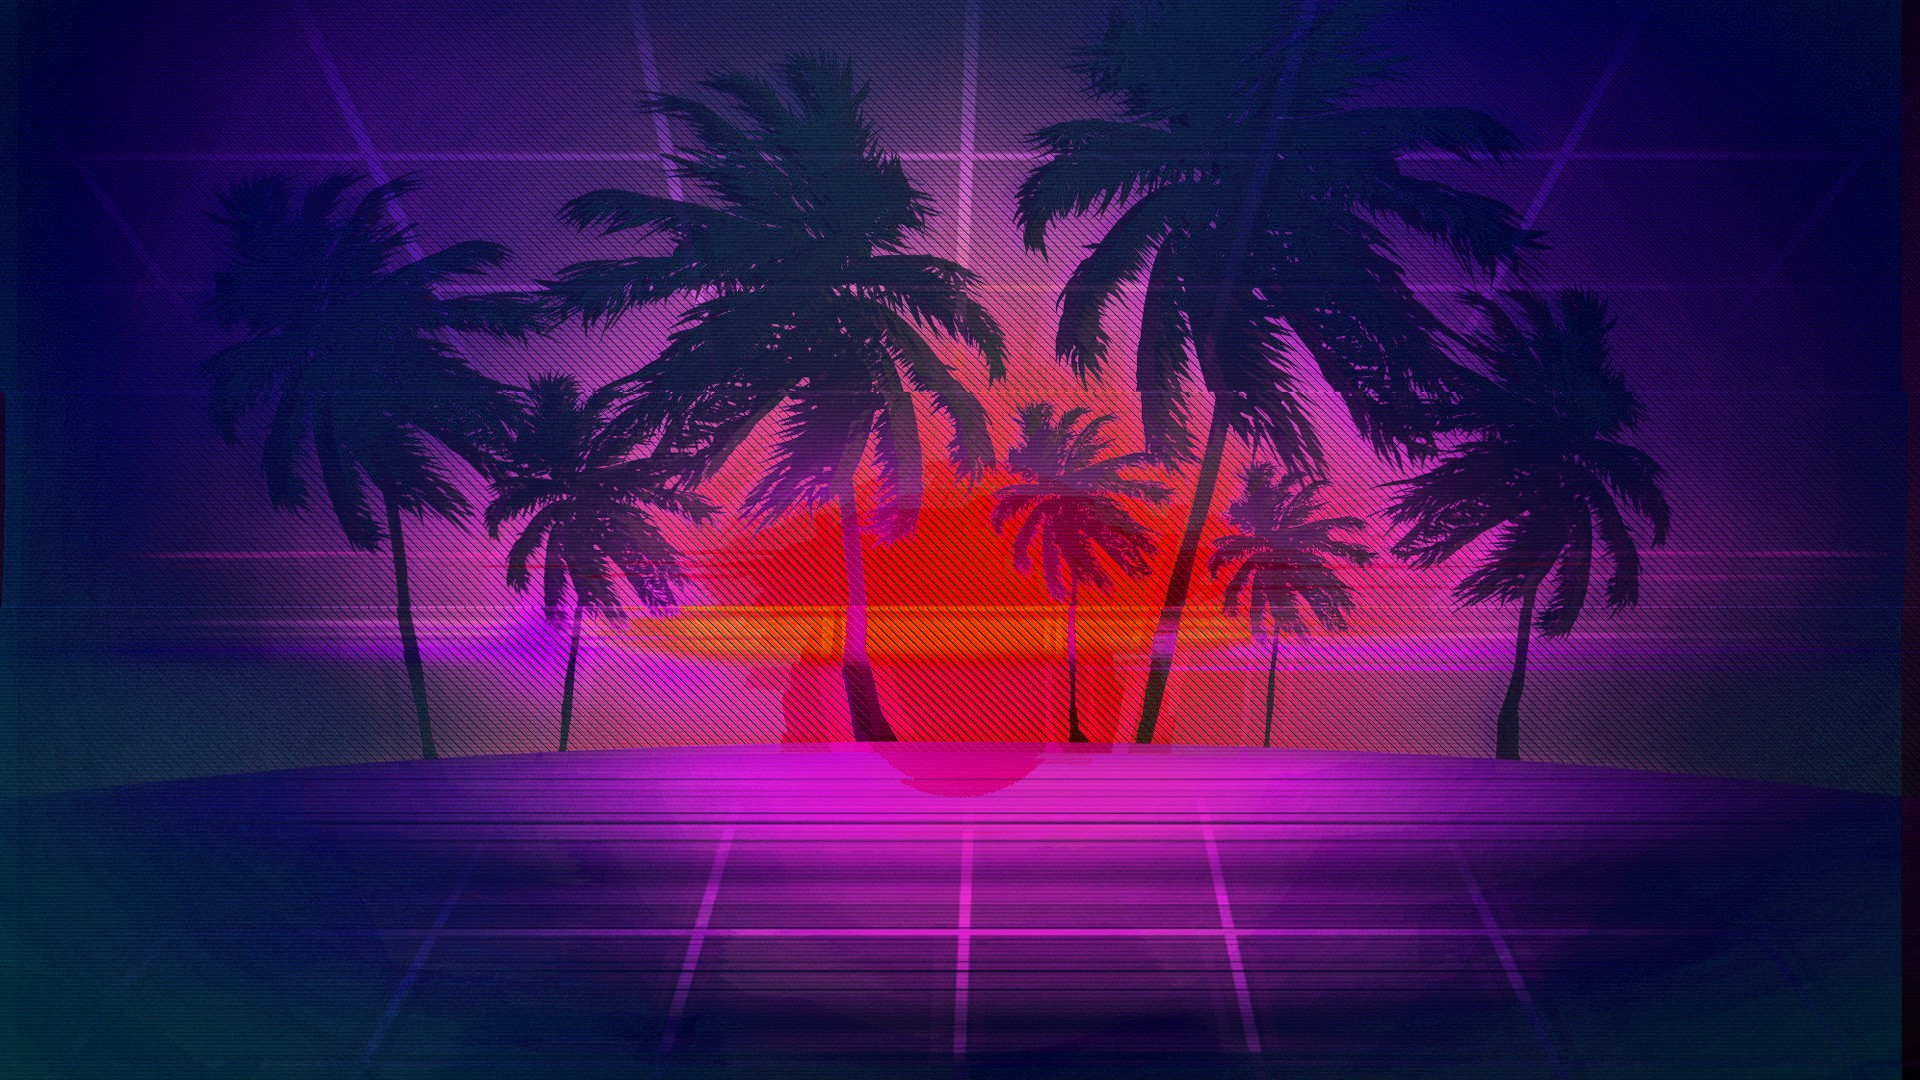 Miami Iphone X Wallpaper Vaporwave Hd Wallpaper Background Image 1920x1080 Id